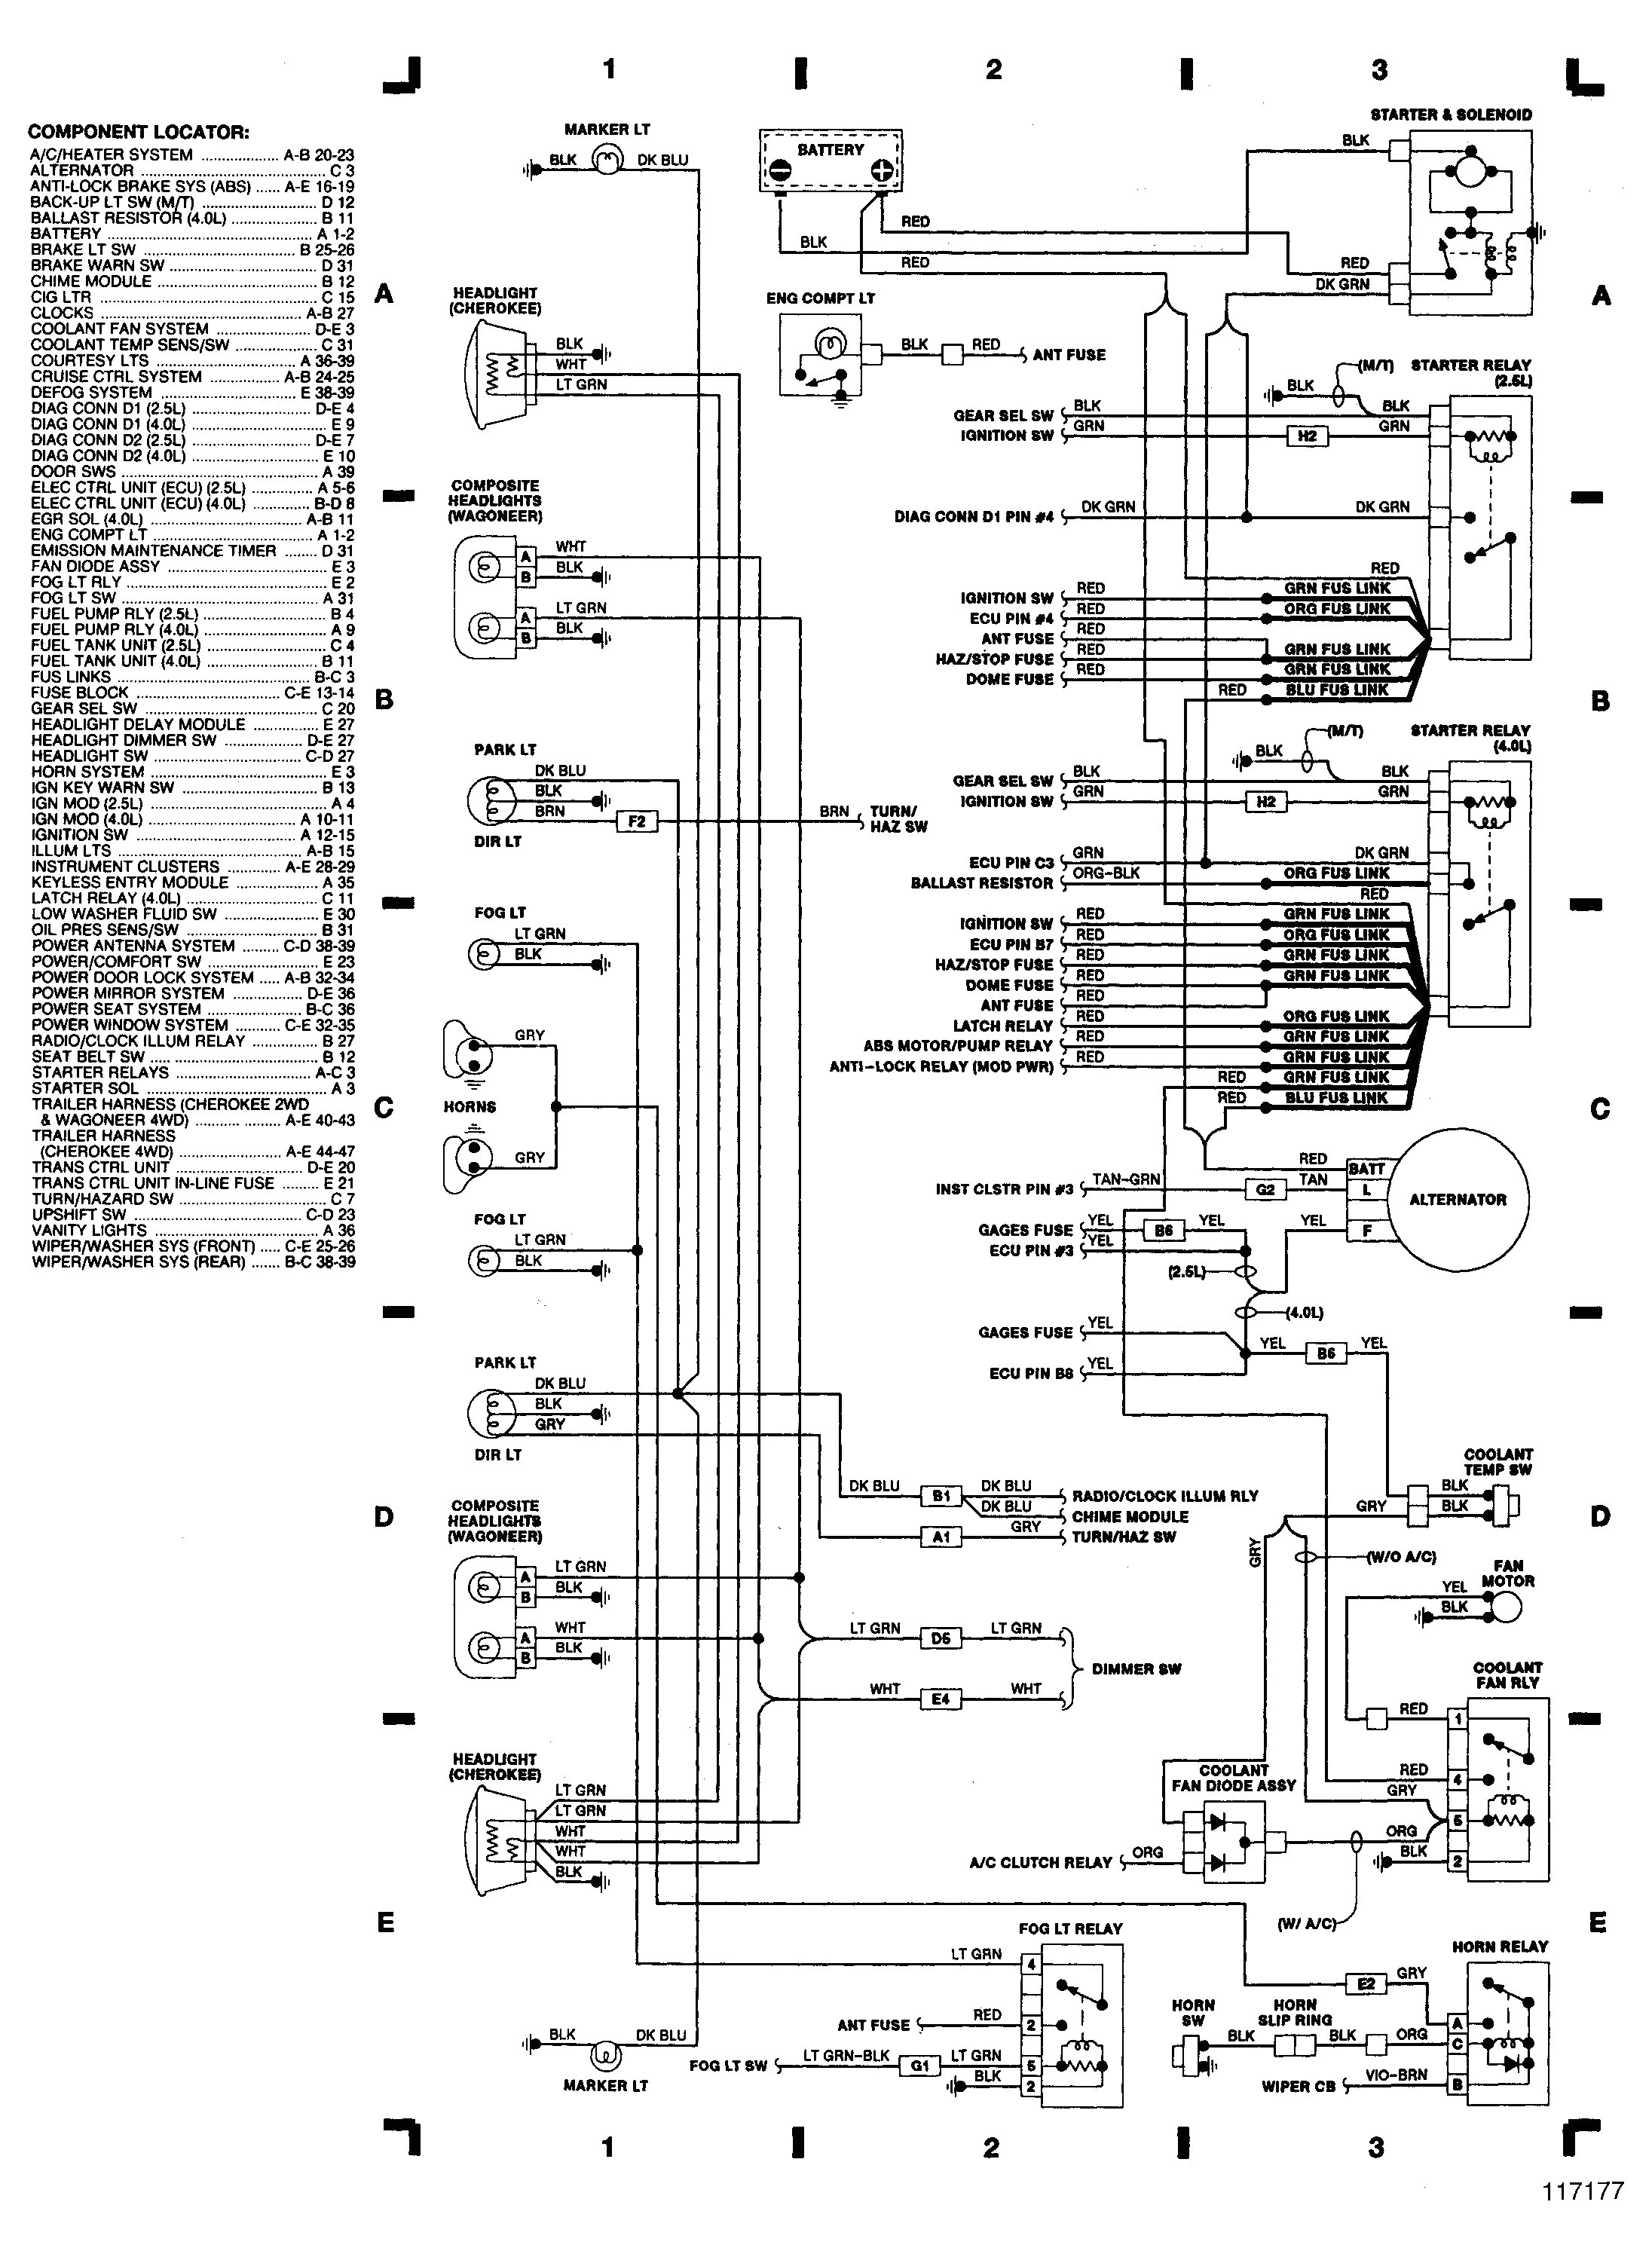 jeep 2 5 engine diagram wiring diagram imgmoreover jeep wrangler 2 5 engine on 88 jeep